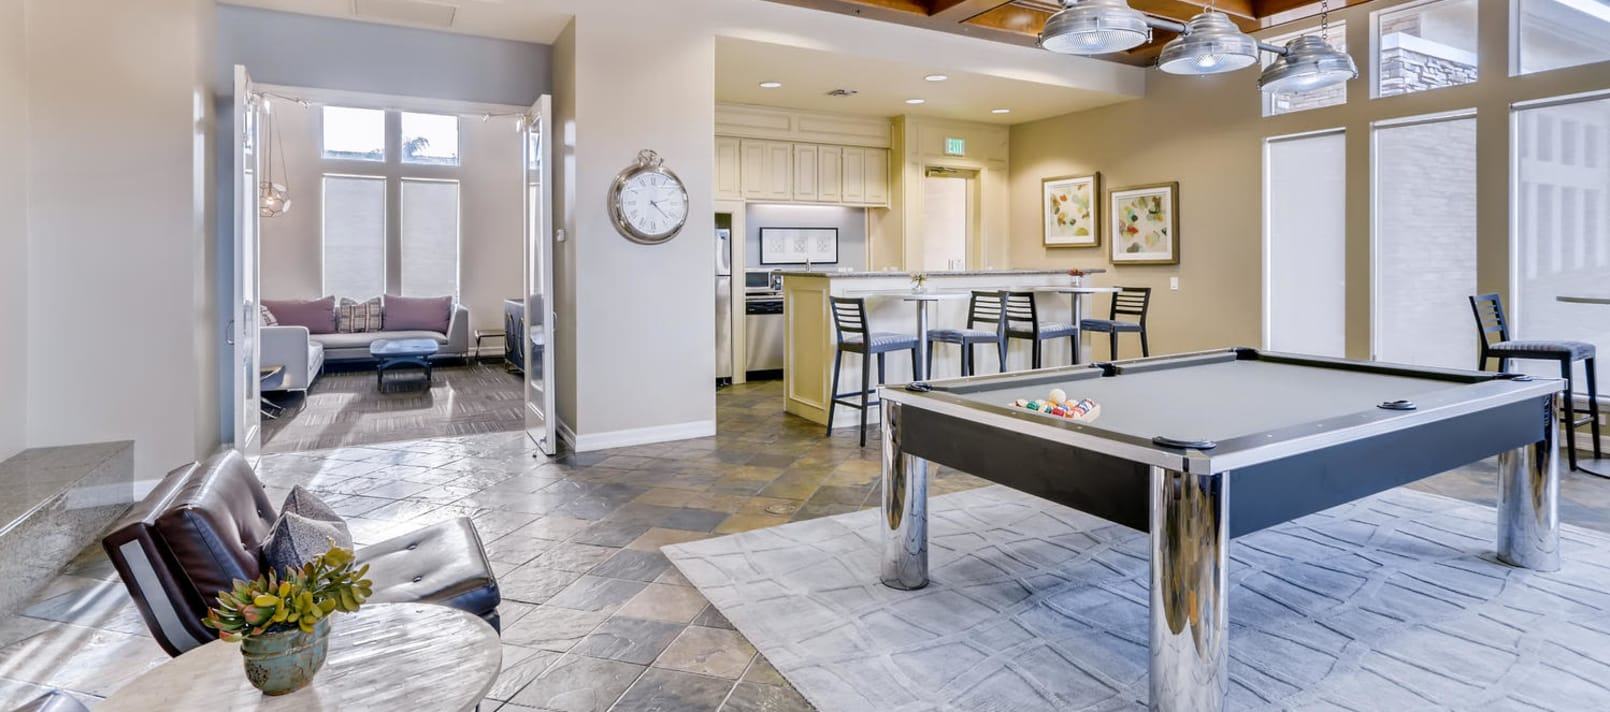 Resident's Clubhouse With Kitchen in Alize at Aliso Viejo Apartment Homes in Aliso Viejo, California